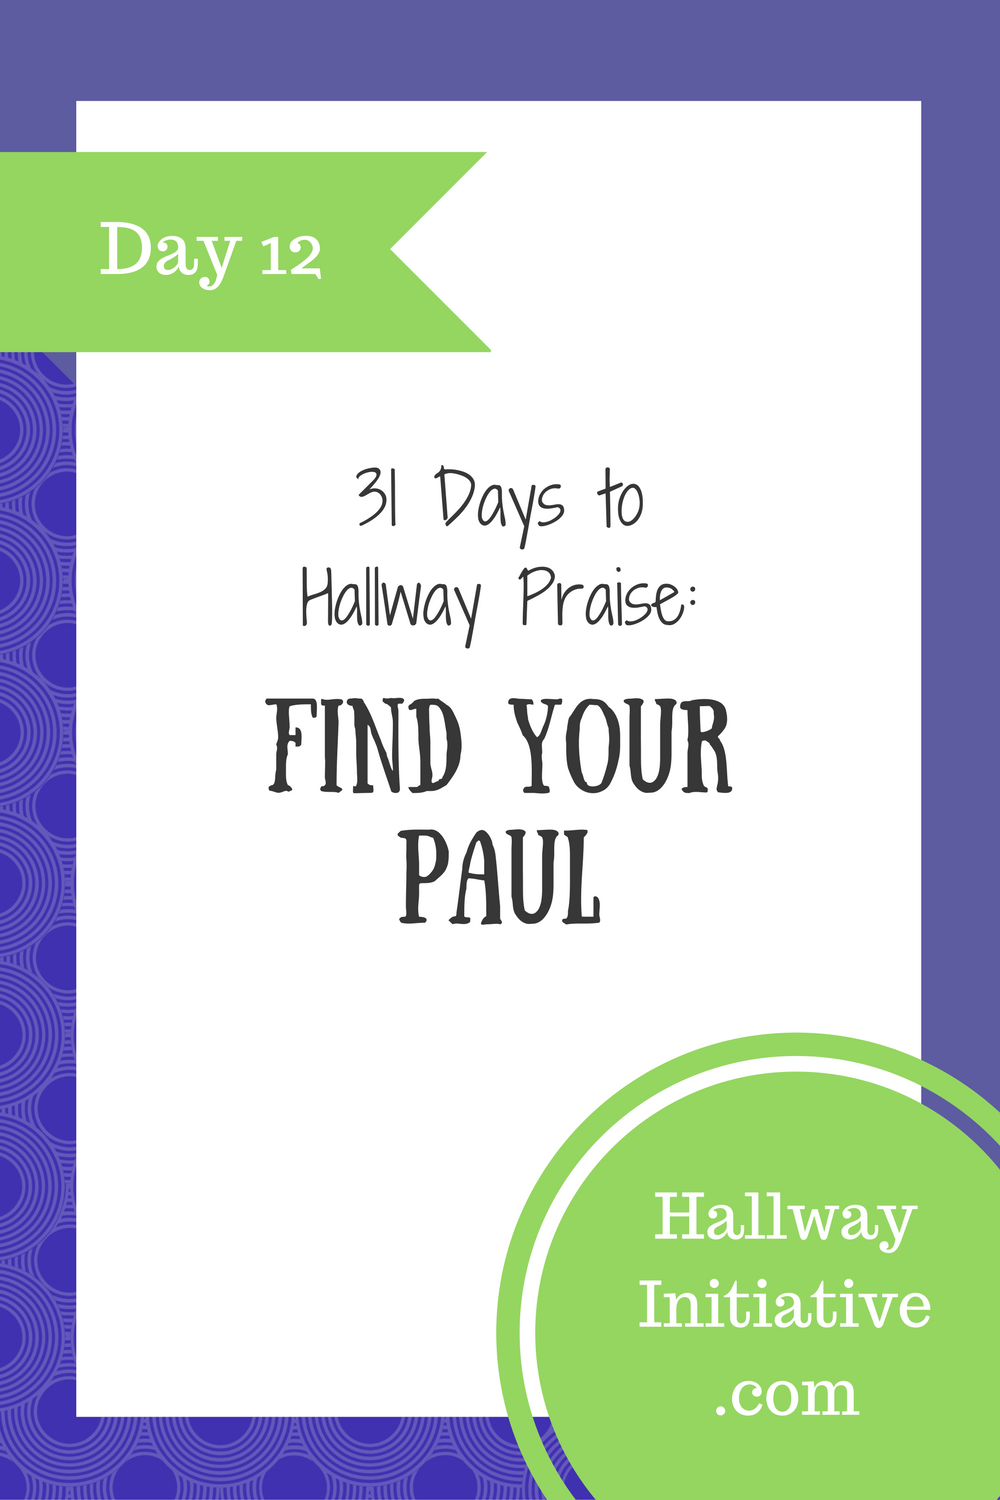 Day 12: find your Paul